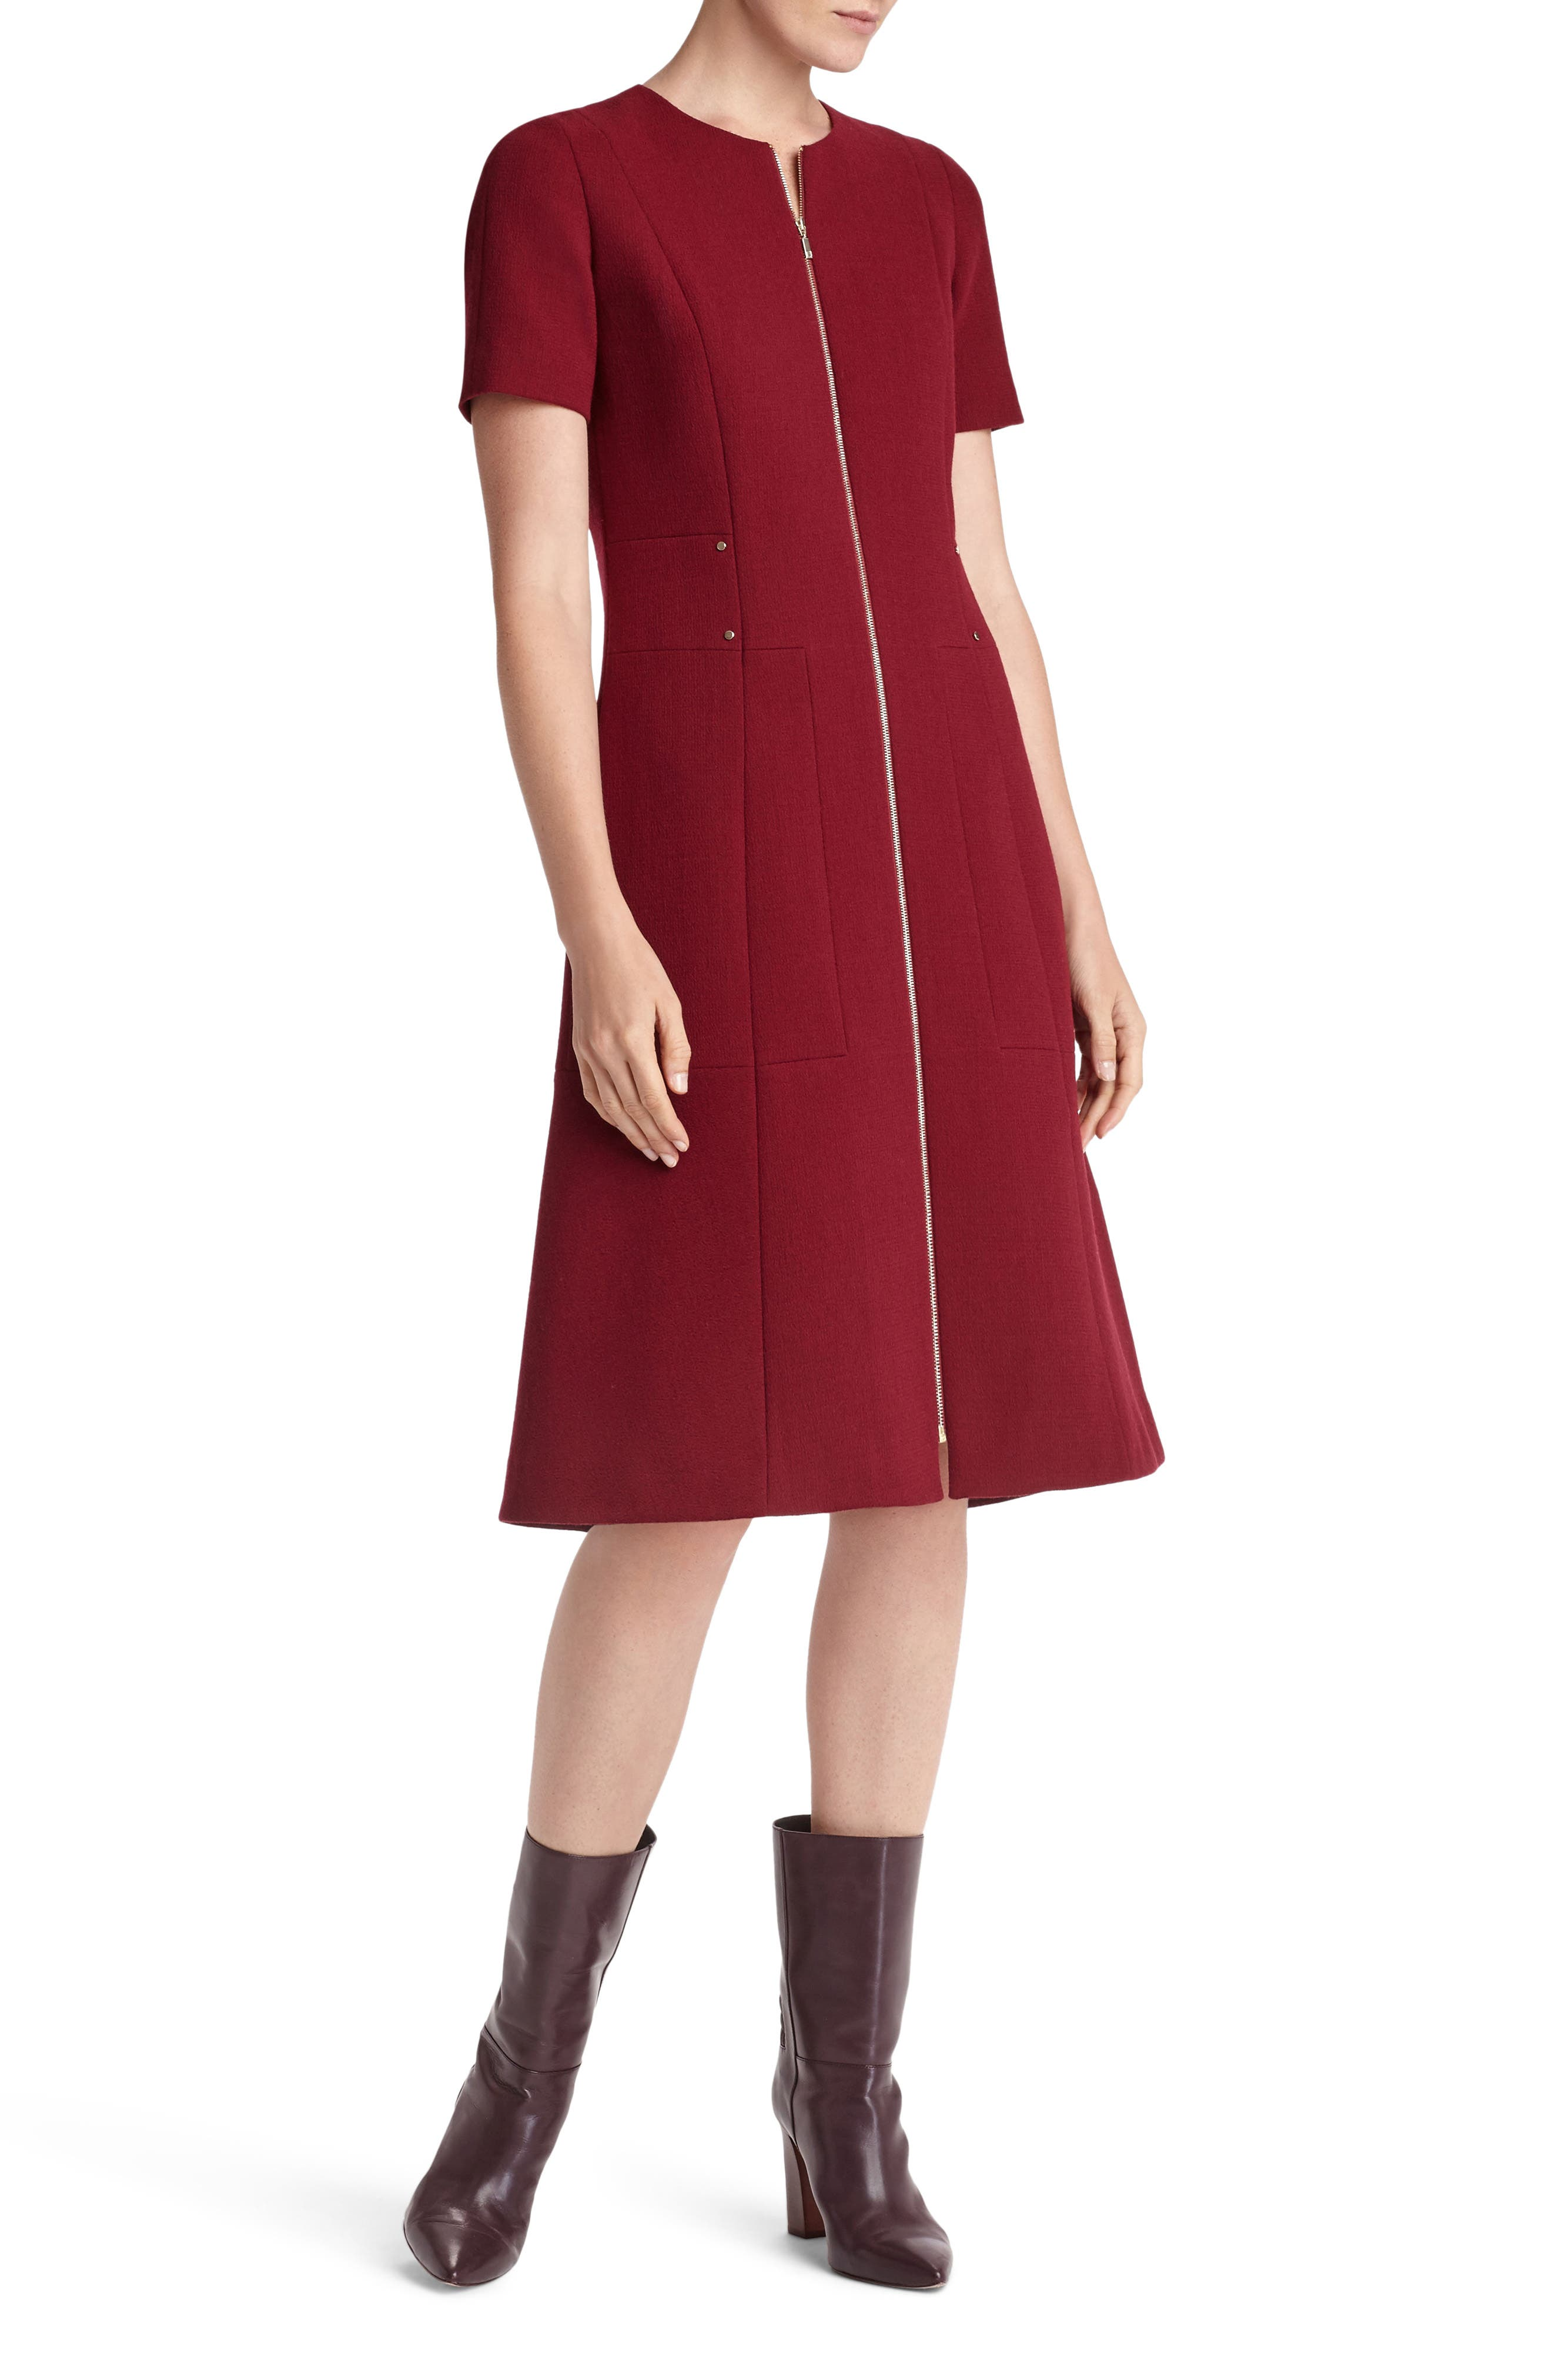 Alternate Image 1 Selected - Lafayette 148 New York Sonya Nouveau Crepe Dress